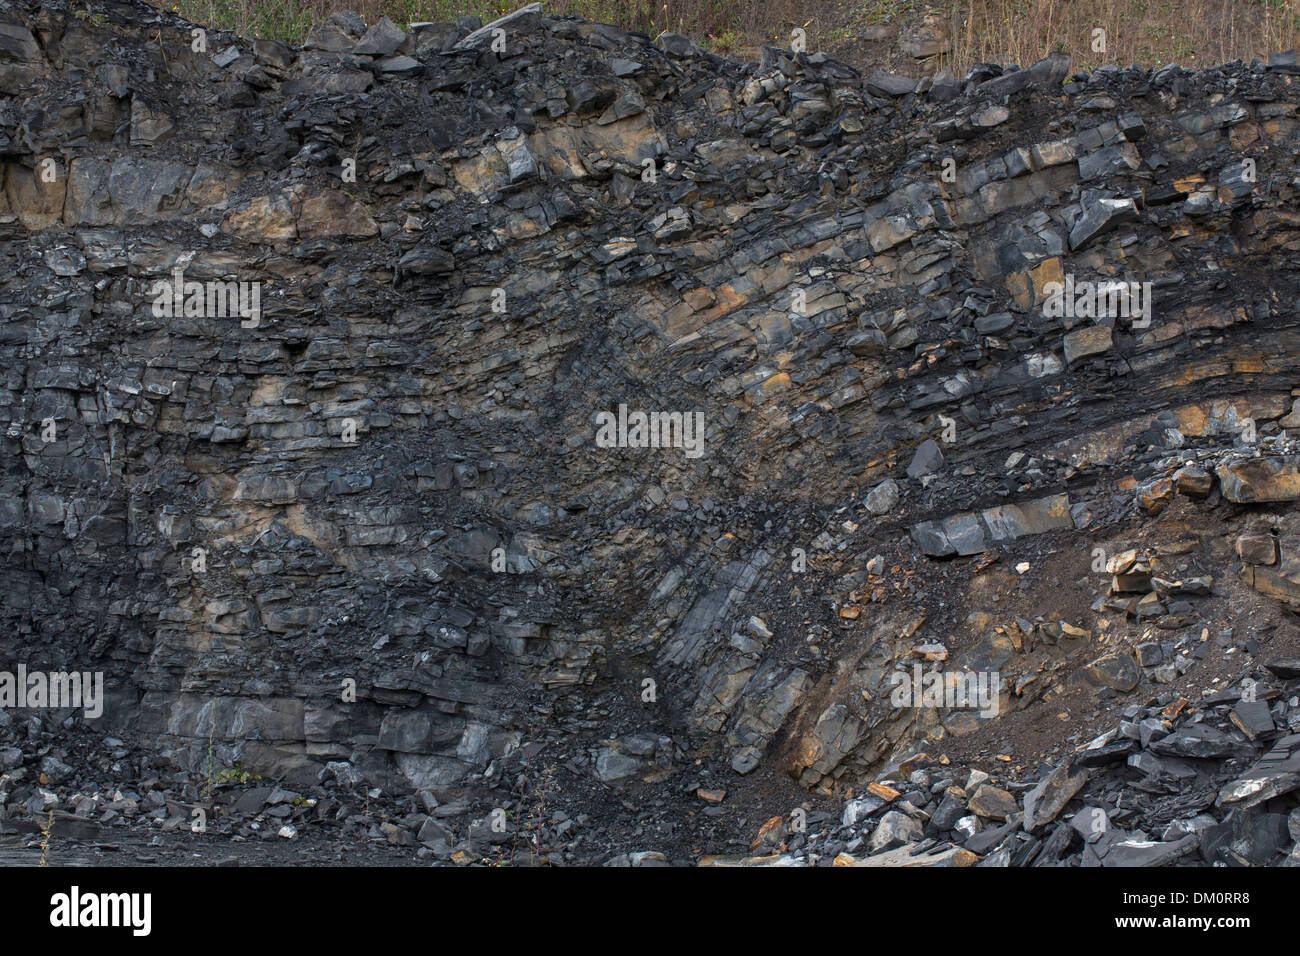 Marcellus shale, near Marcellus New York, source of natural